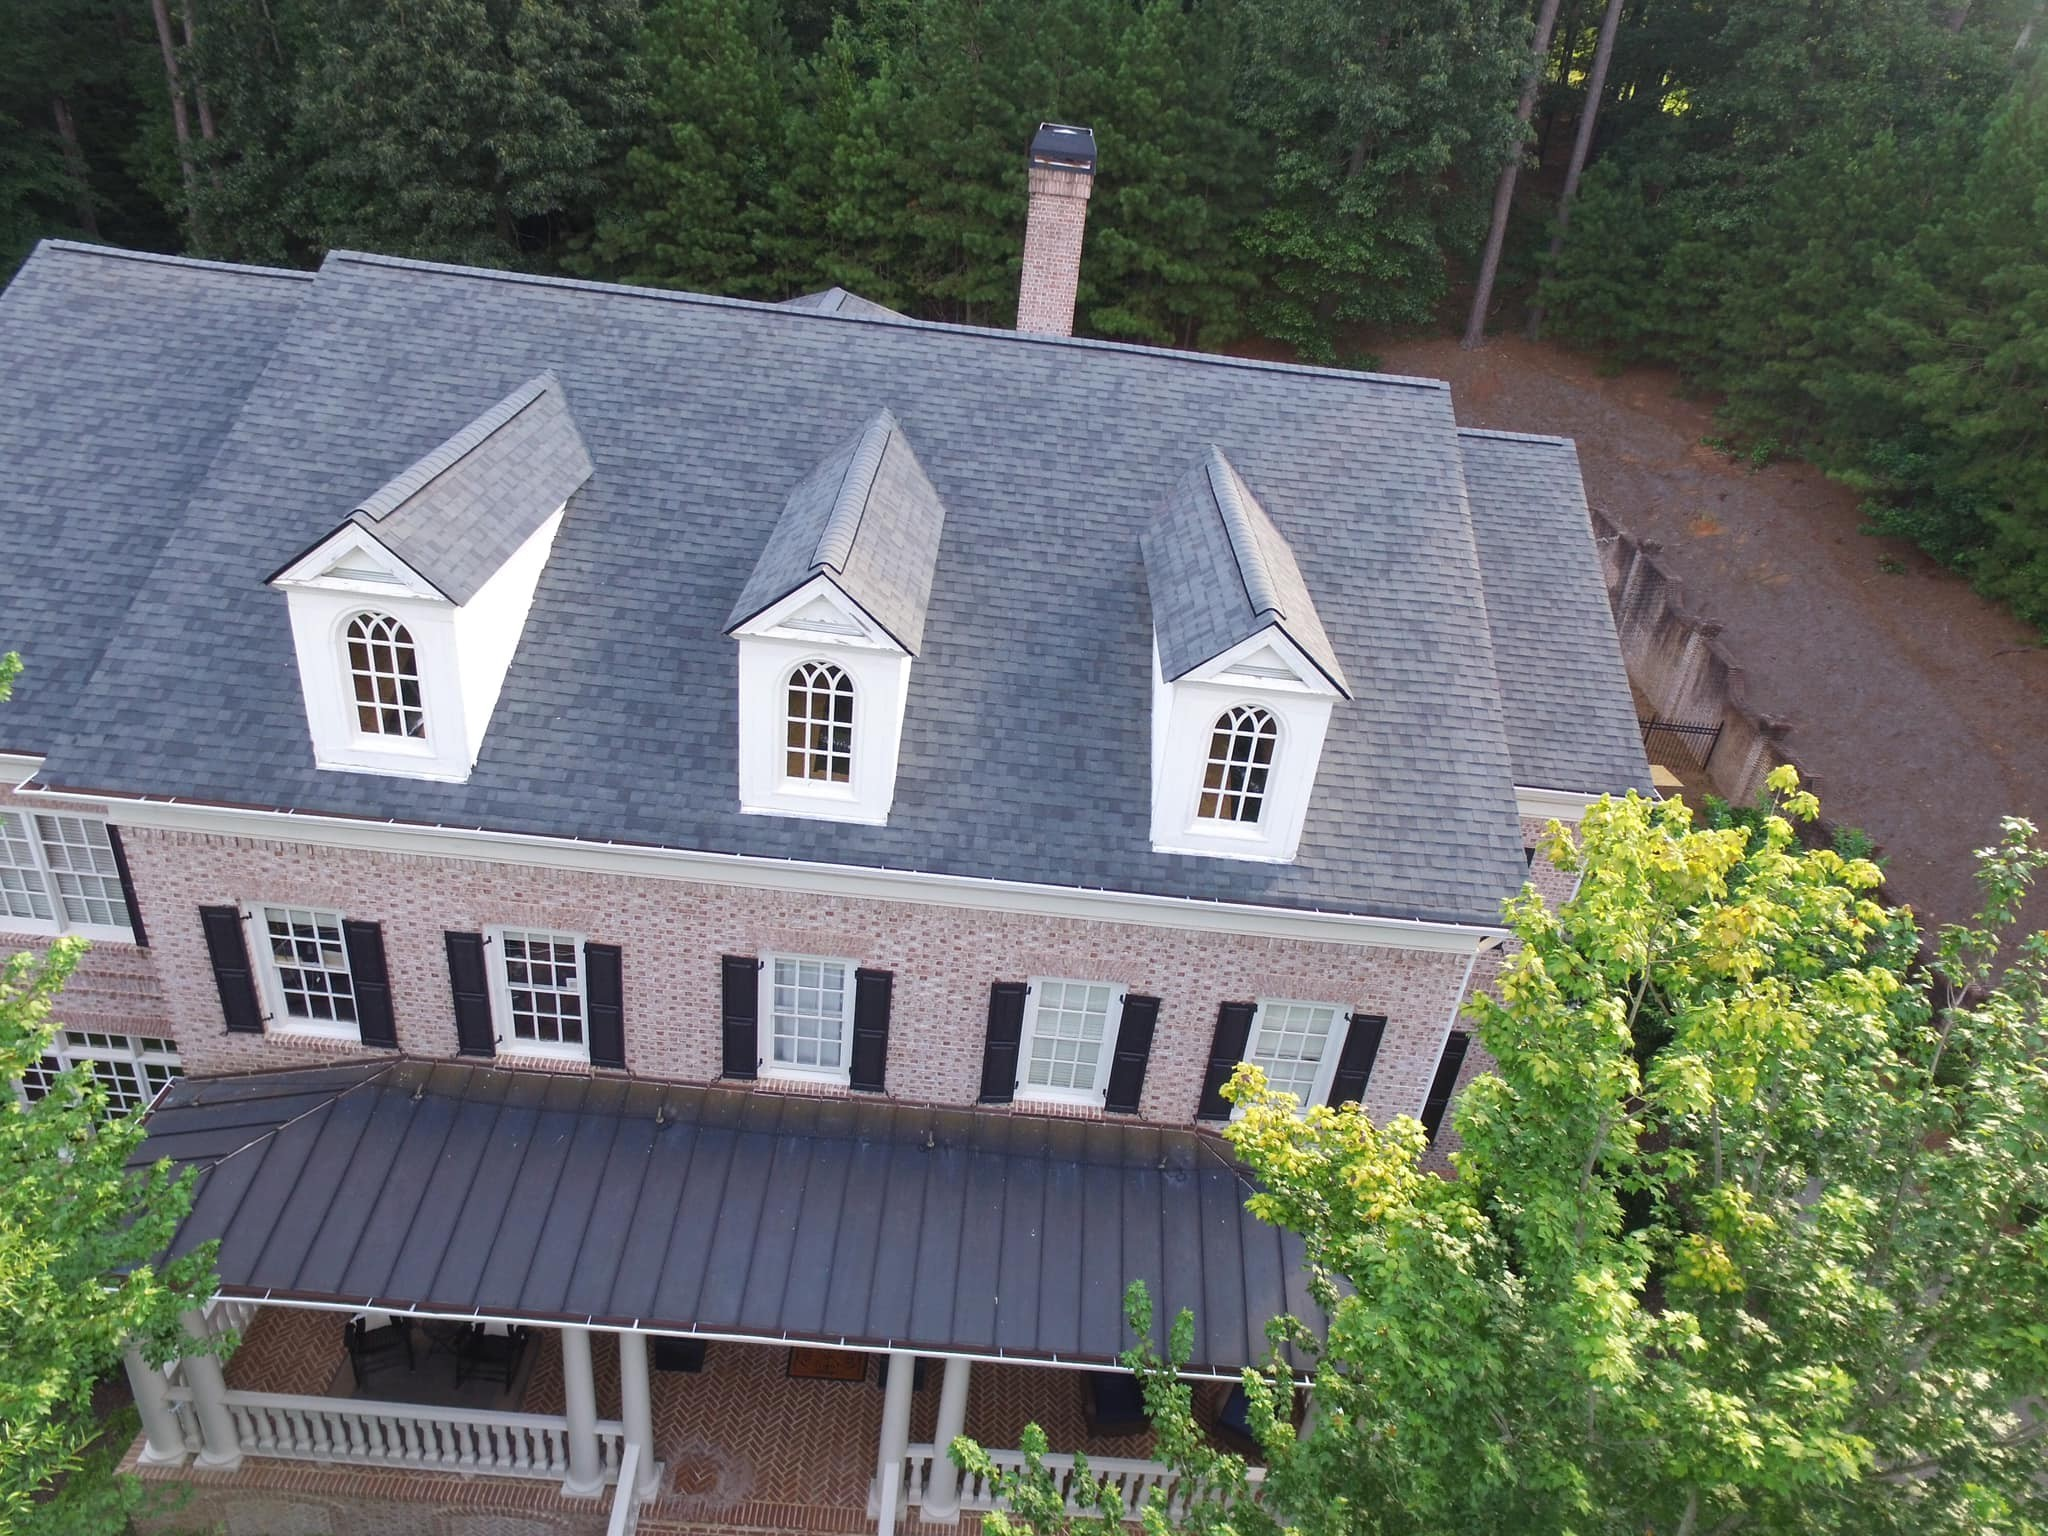 Tear off and install near me Lawrenceville GA - The Roofing HQ